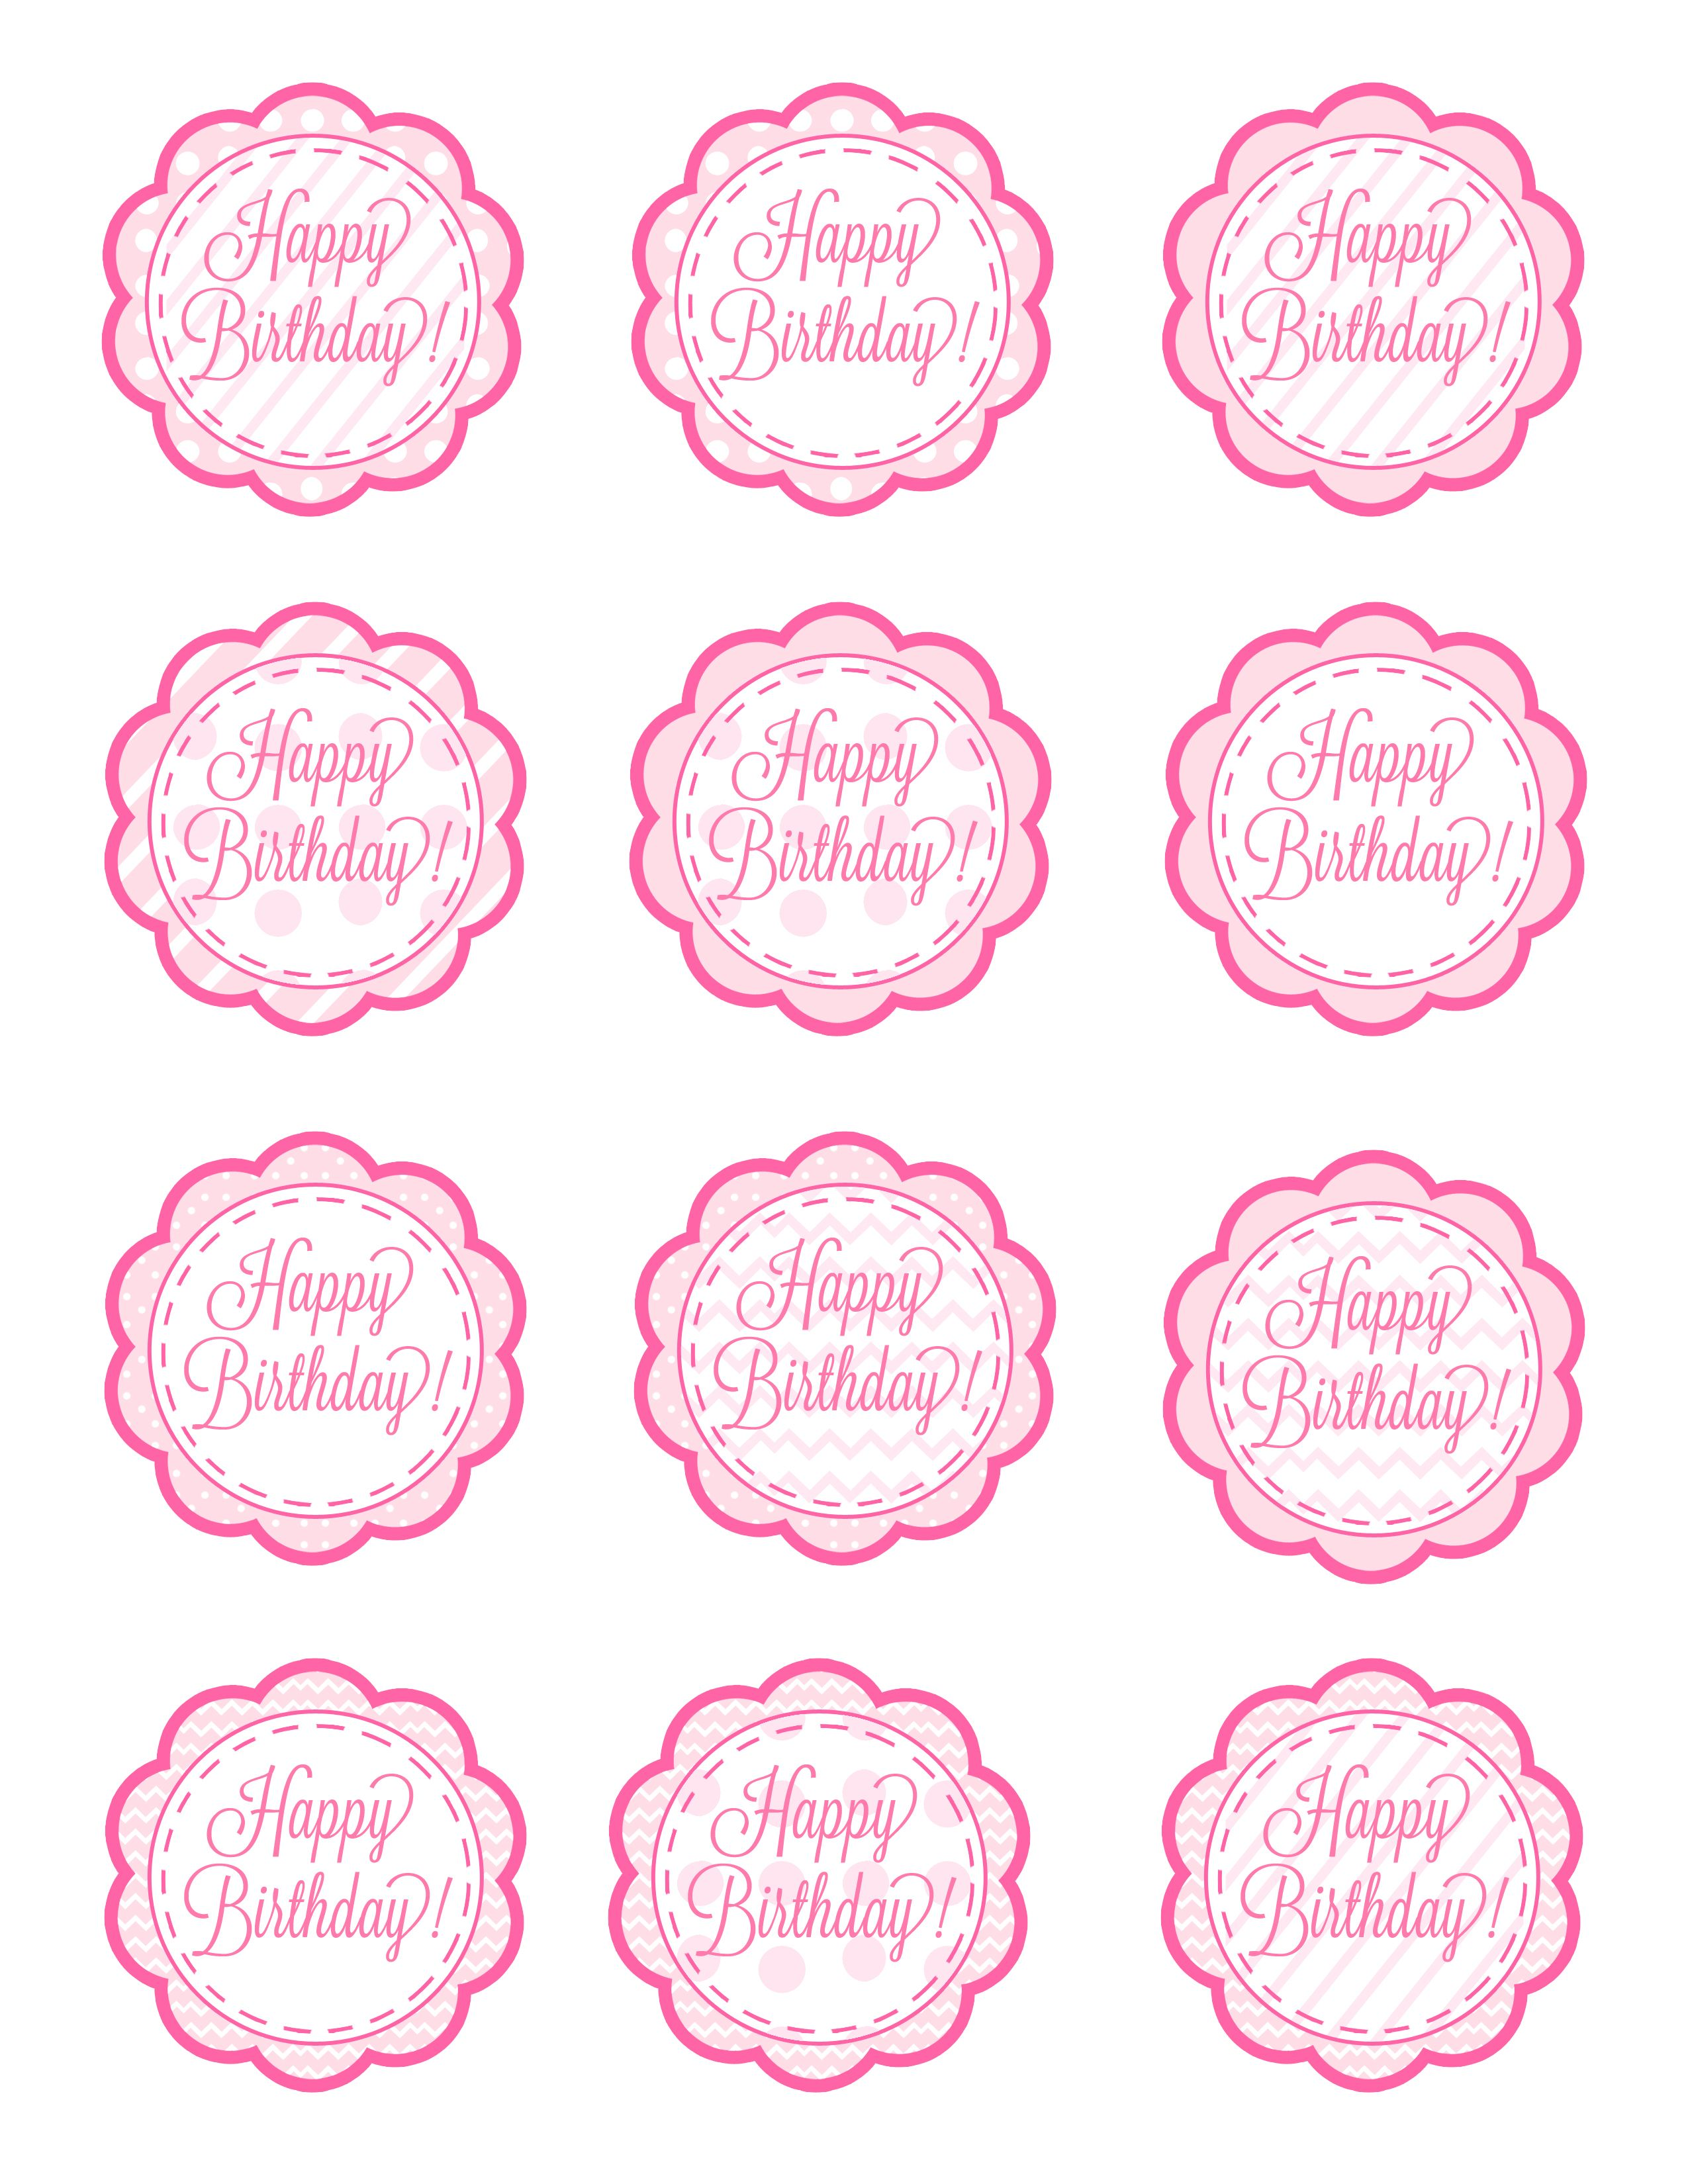 Happy Birthday Cupcake Topper ~ American girl free cupcake toppers printable these could also easily double as gift tags just